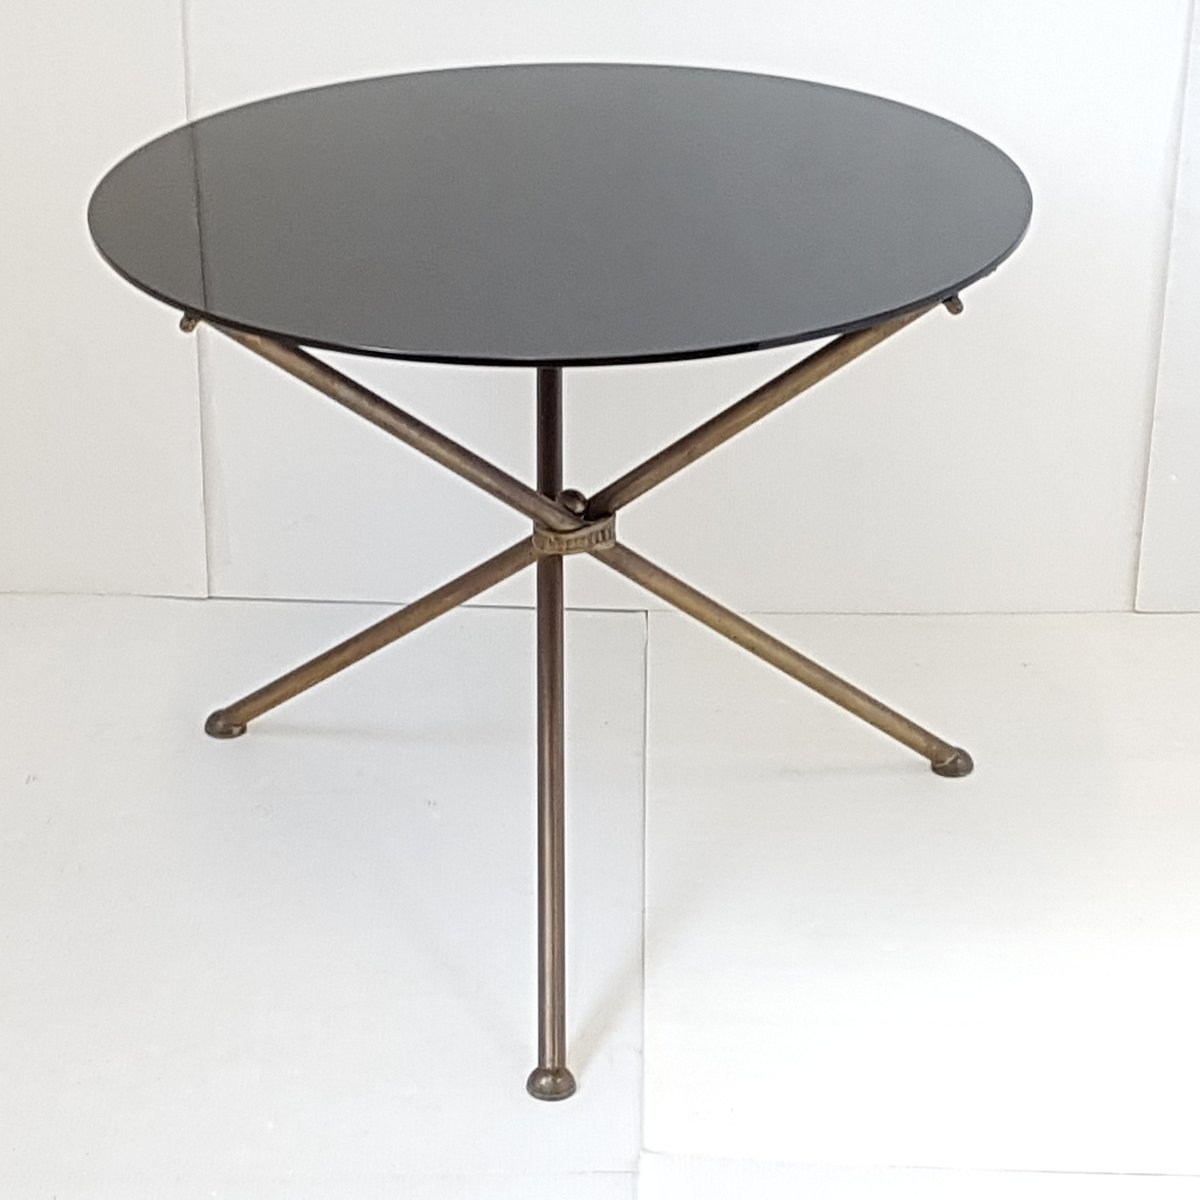 French Black Brass Tripod Side Table S For Sale At Pamono - Black and brass side table